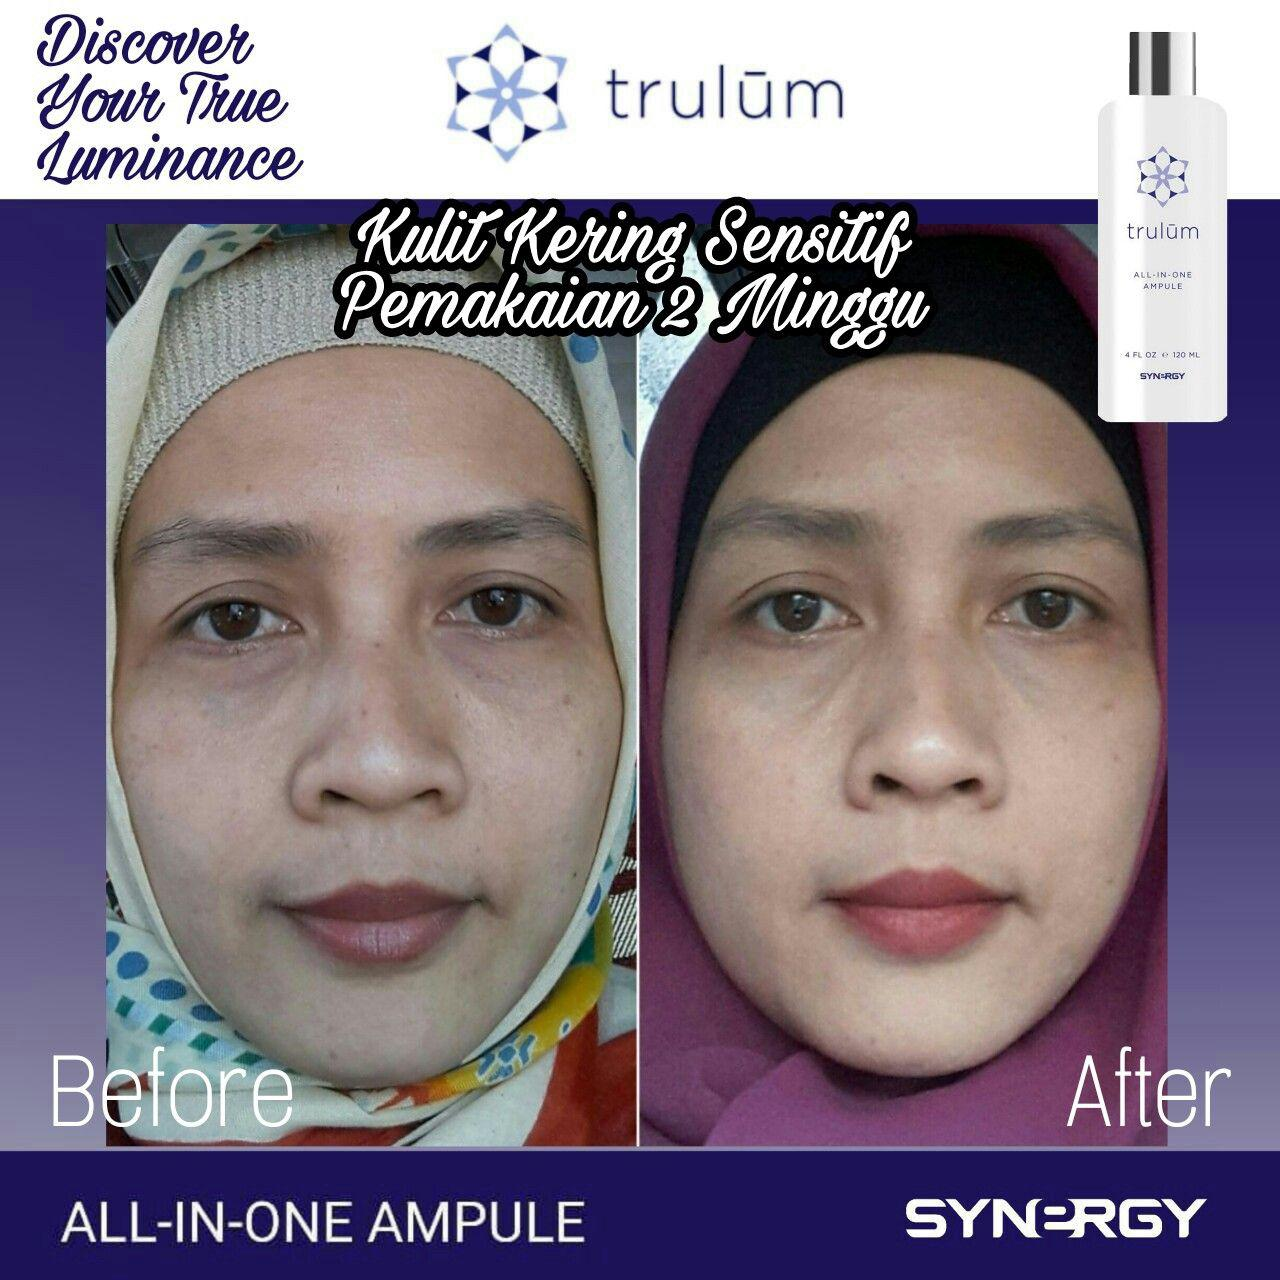 Jual Trulum All In One Di Pasie Raya, Aceh Jaya WA: 08112338376